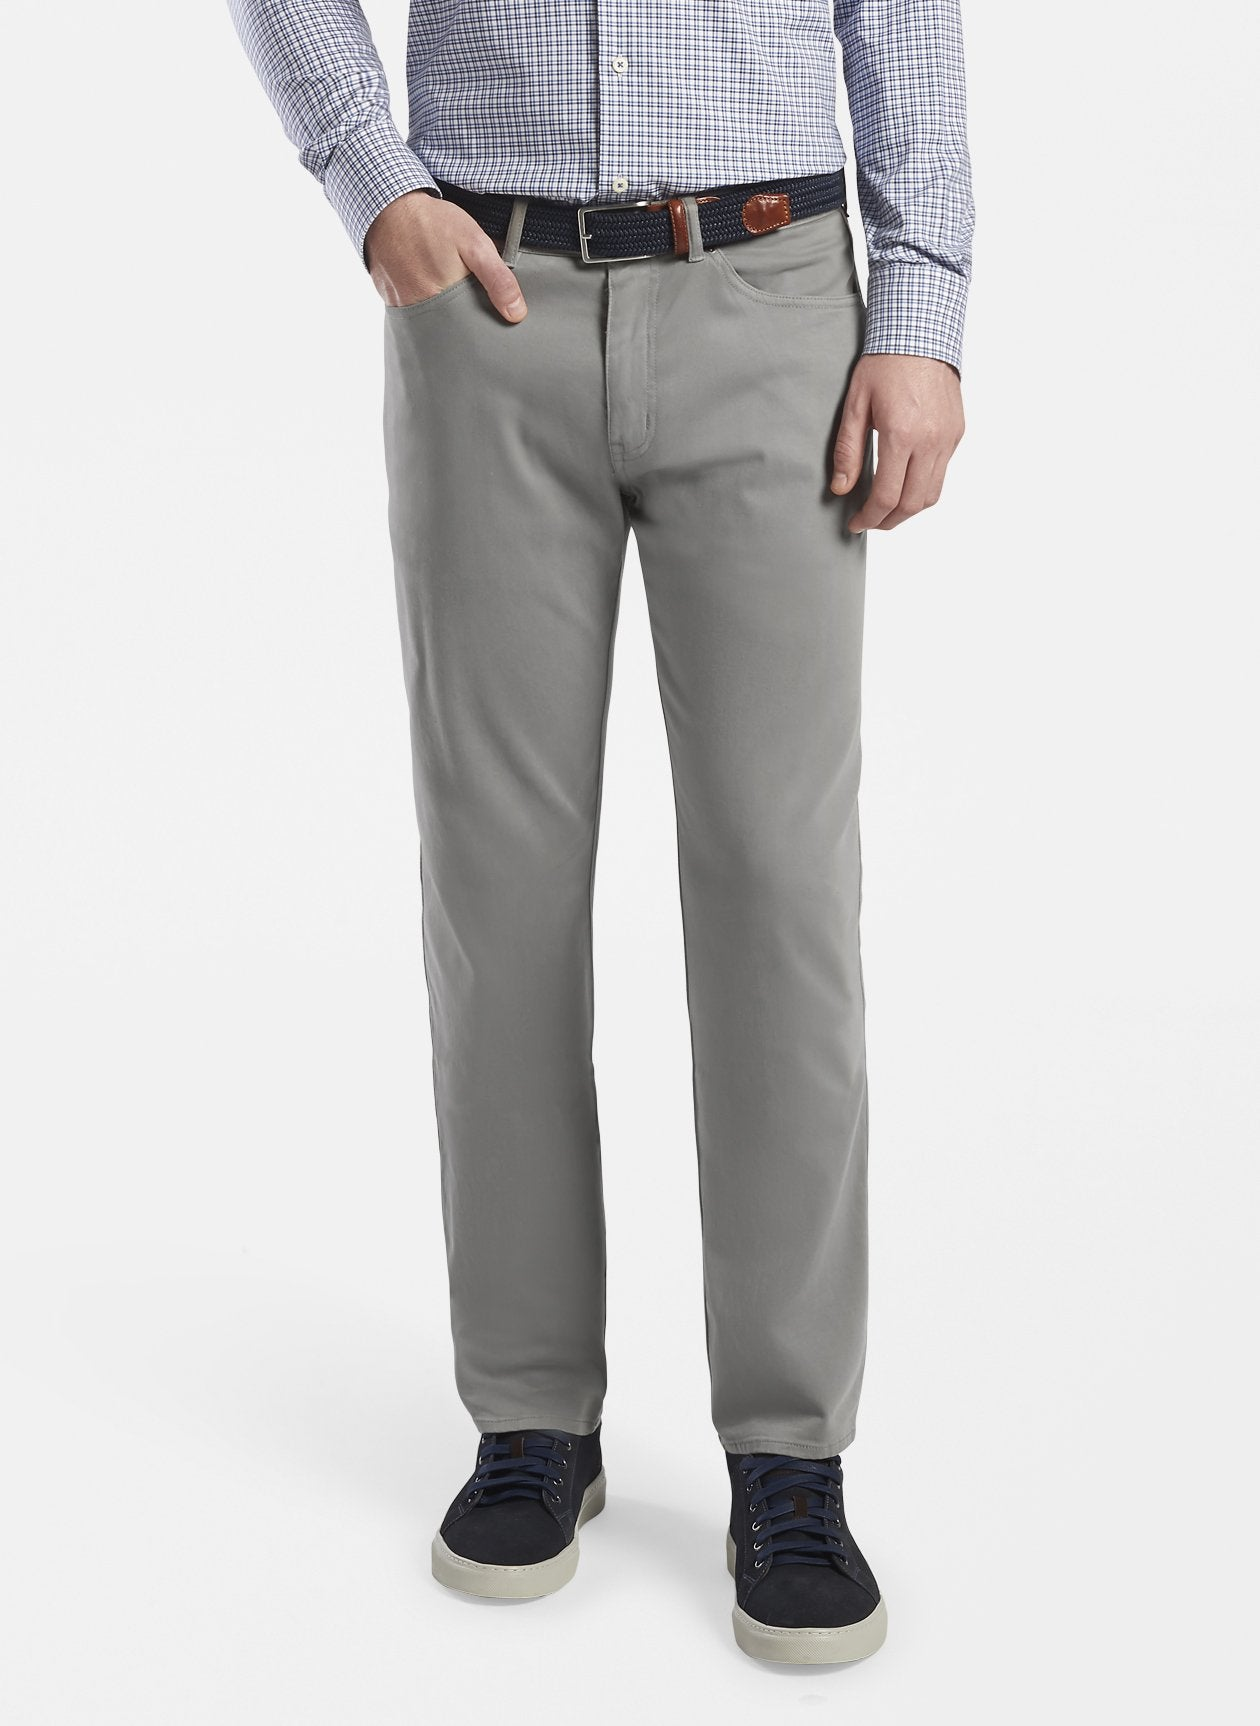 PETER MILLAR Men's Pants GALE / 32 Peter Millar Ultimate Sateen Five-Pocket Pant || David's Clothing ME0B39G